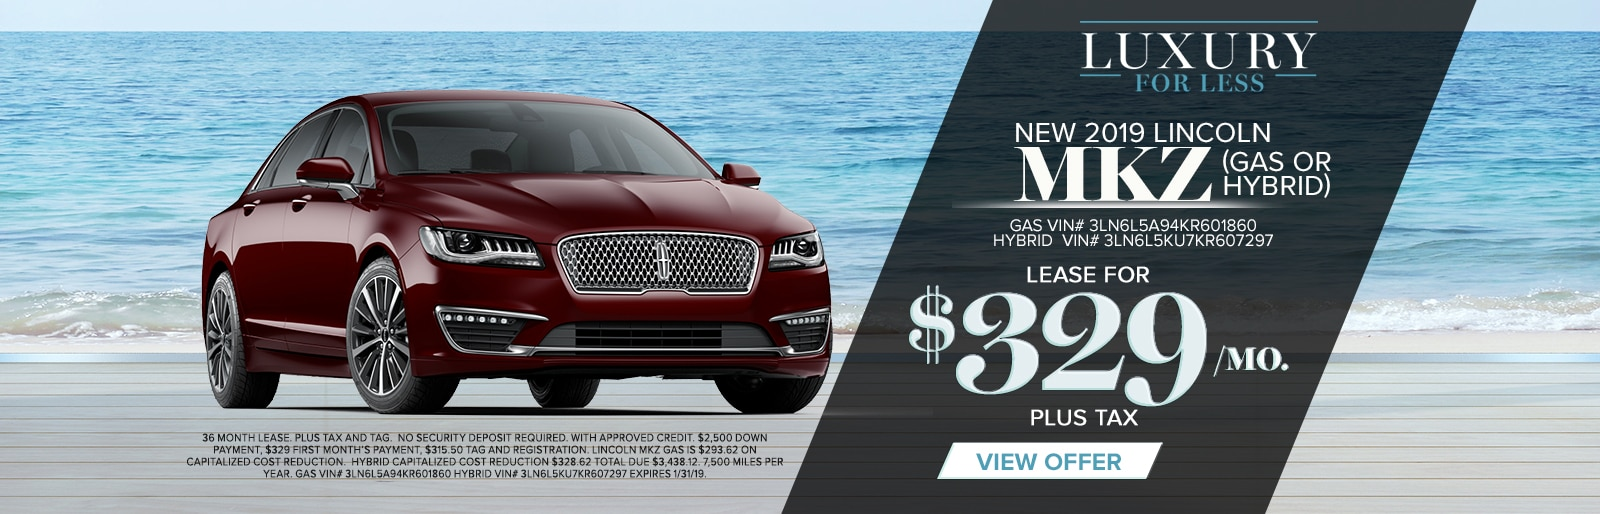 Al Packer Lincoln New Used Lincoln Dealership In West Palm Beach